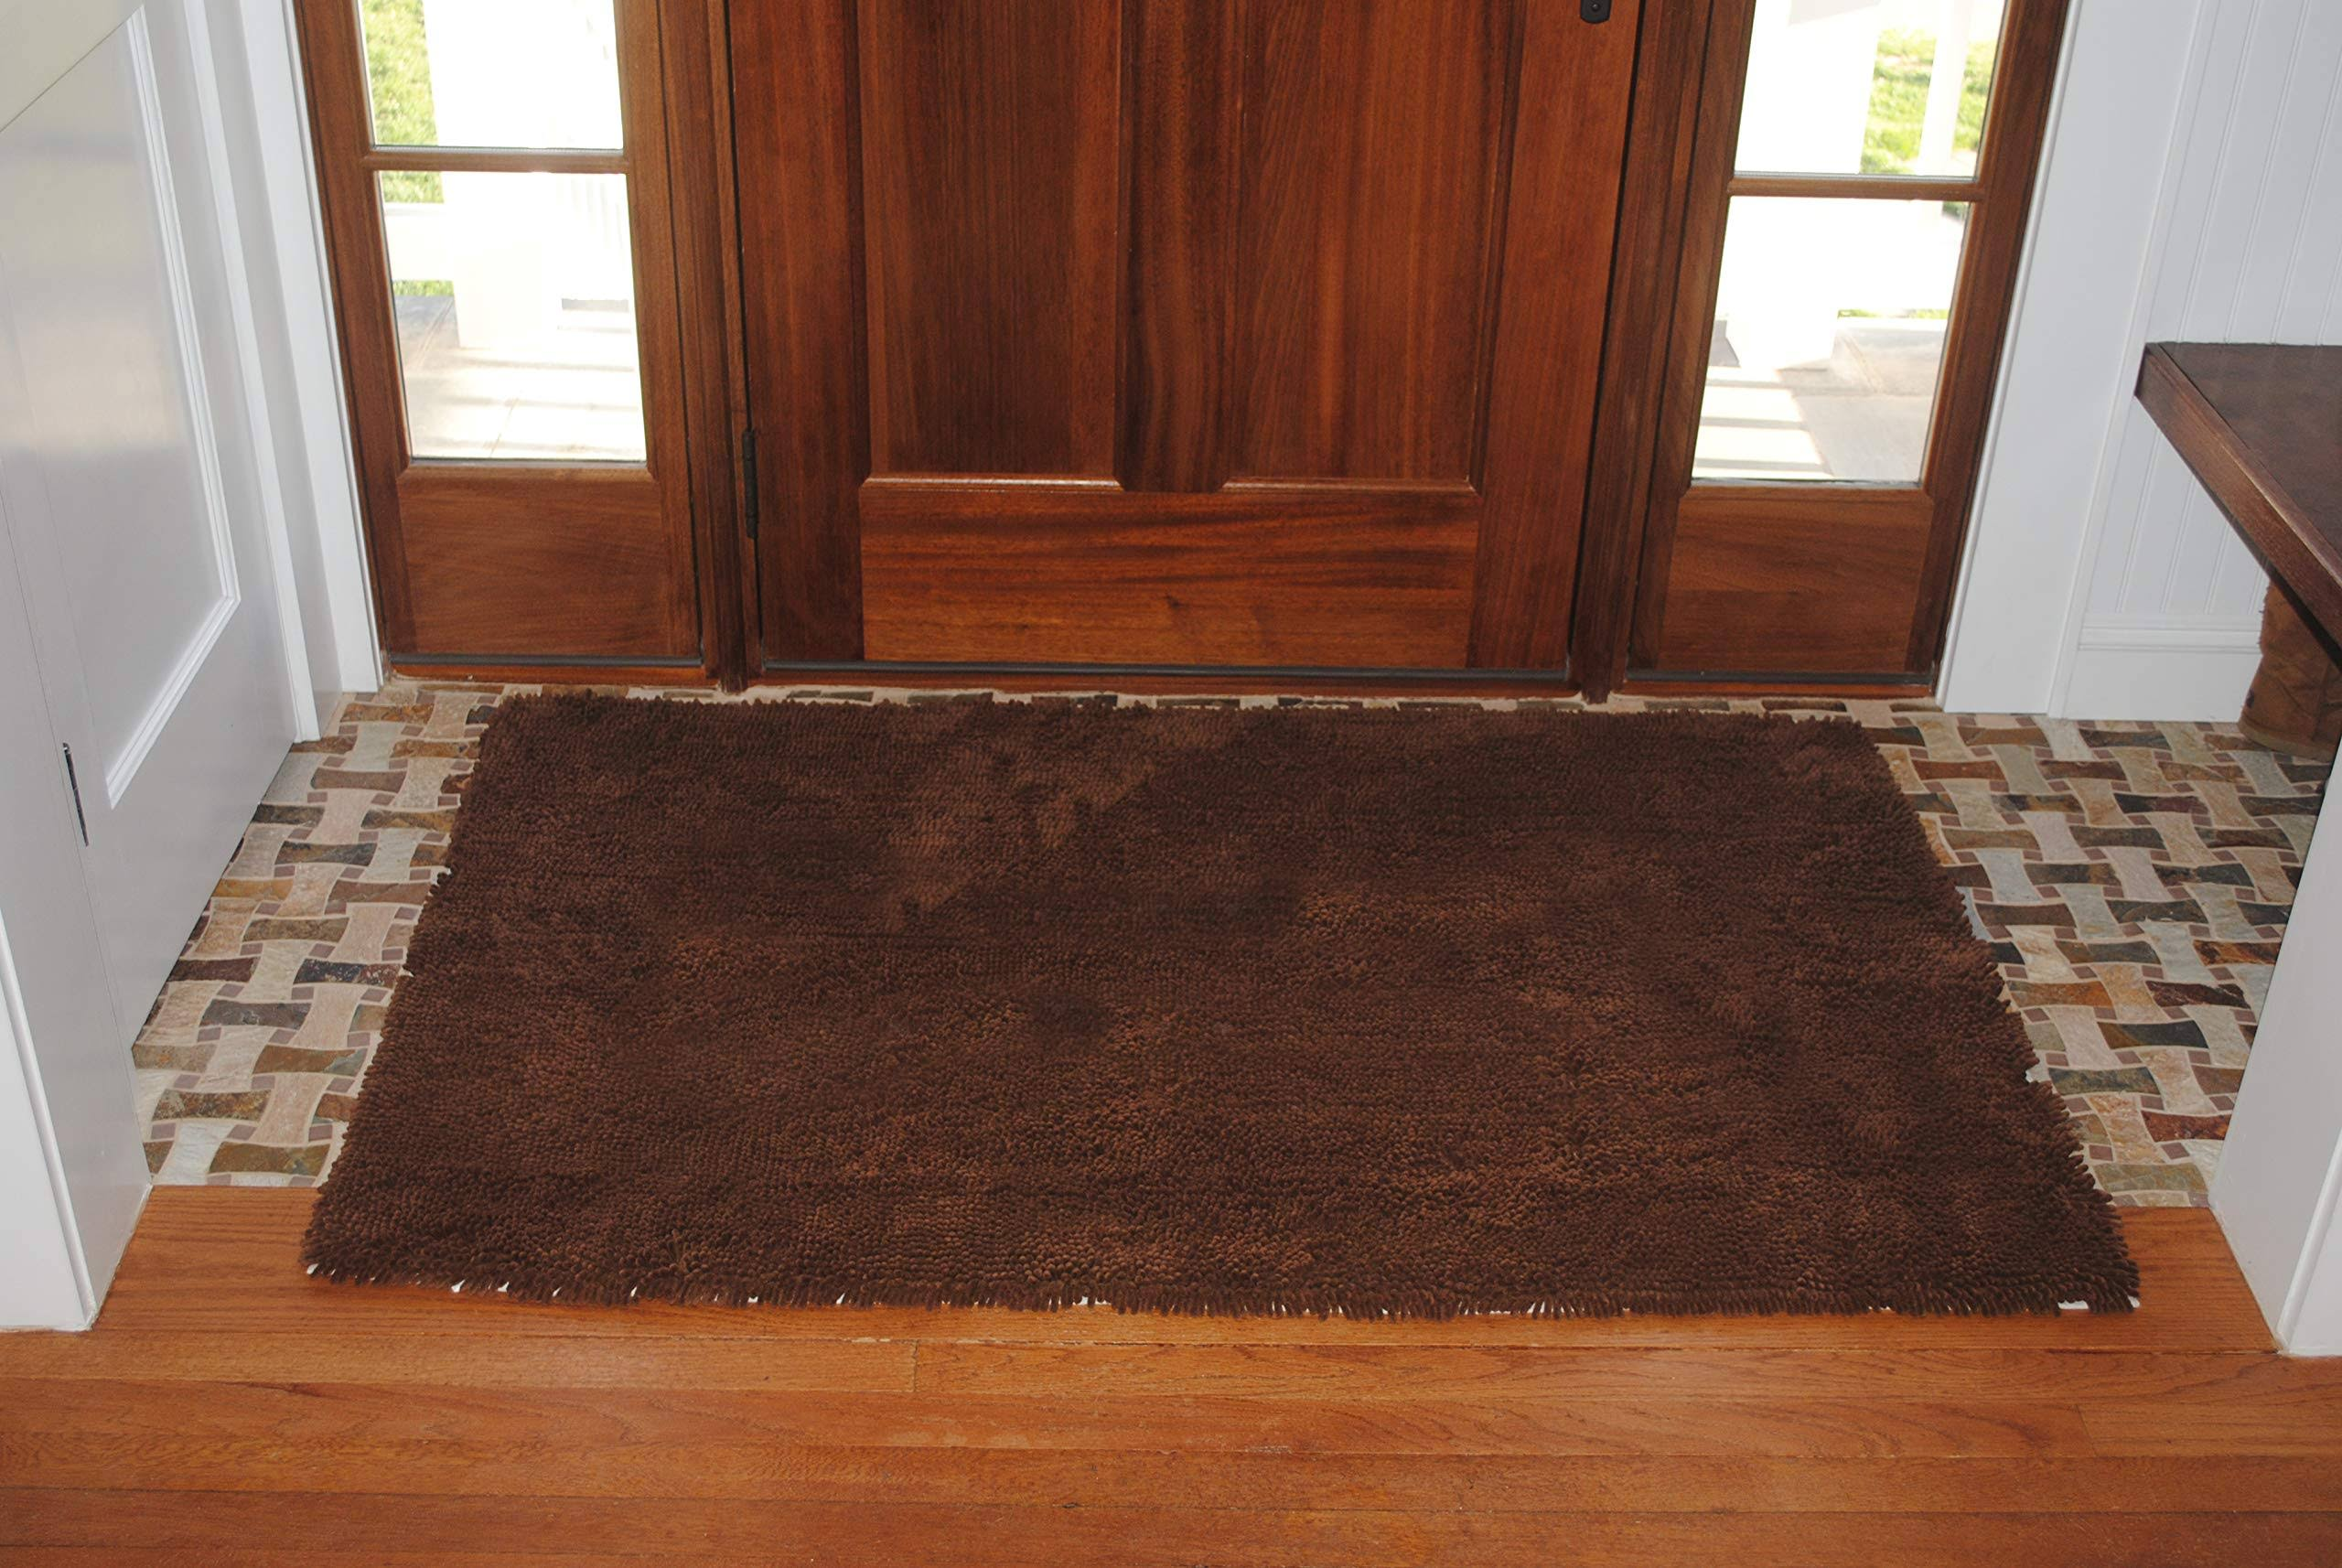 "Soggy Doggy Microfiber Chenille Doormat - Dark Chocolate, 36"" x 60"""